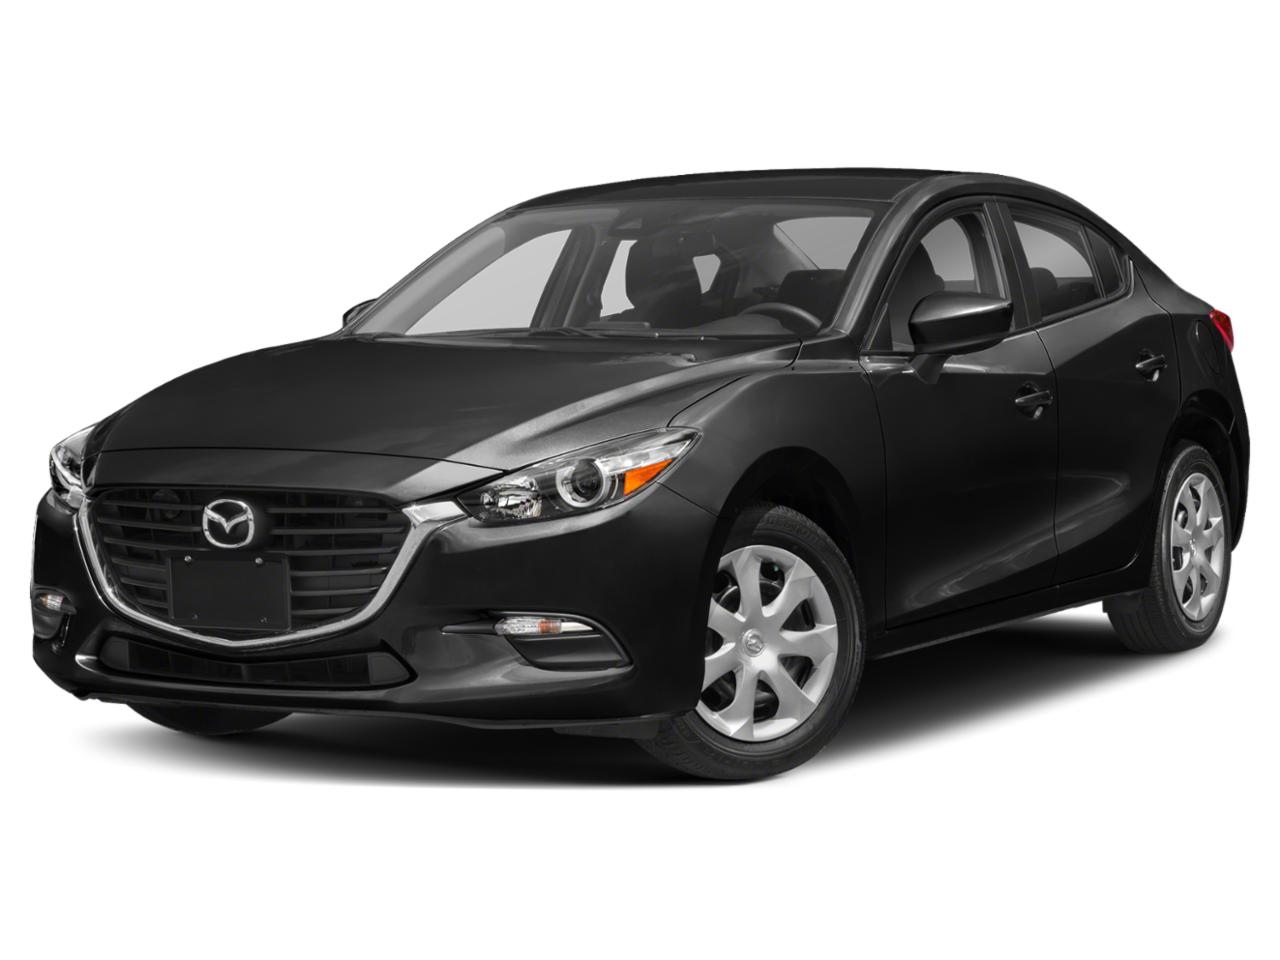 2018 Mazda Mazda3 4-Door Vehicle Photo in Trevose, PA 19053